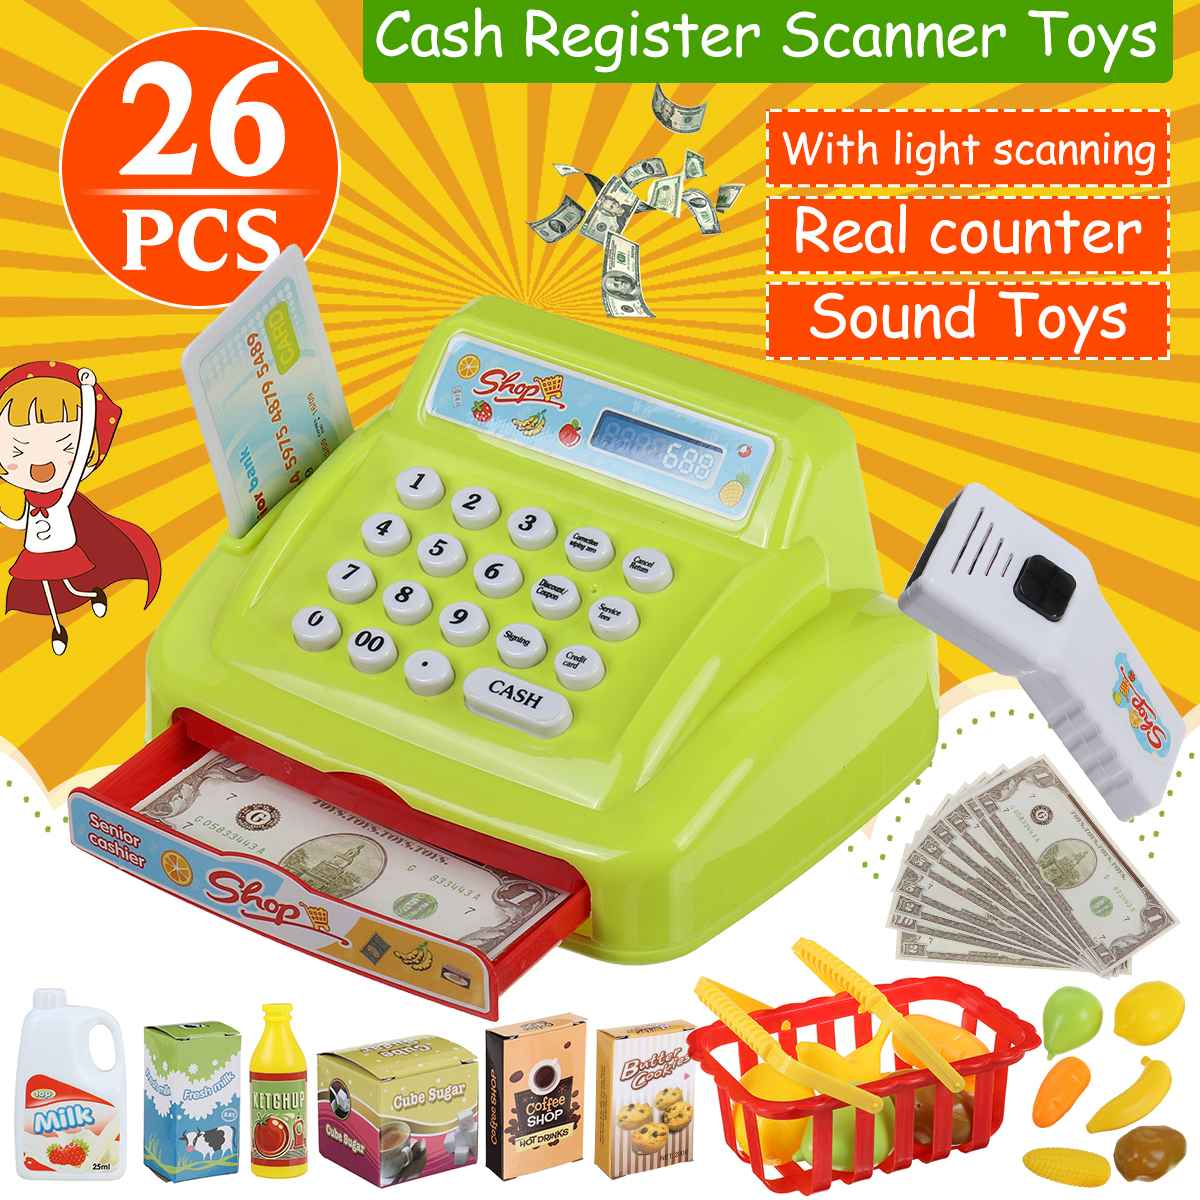 26PCS Kids Groceries Toys Simulation Supermarket Checkout Role Play Counter Cash Register Toys Set Children Pretend Play Gifts